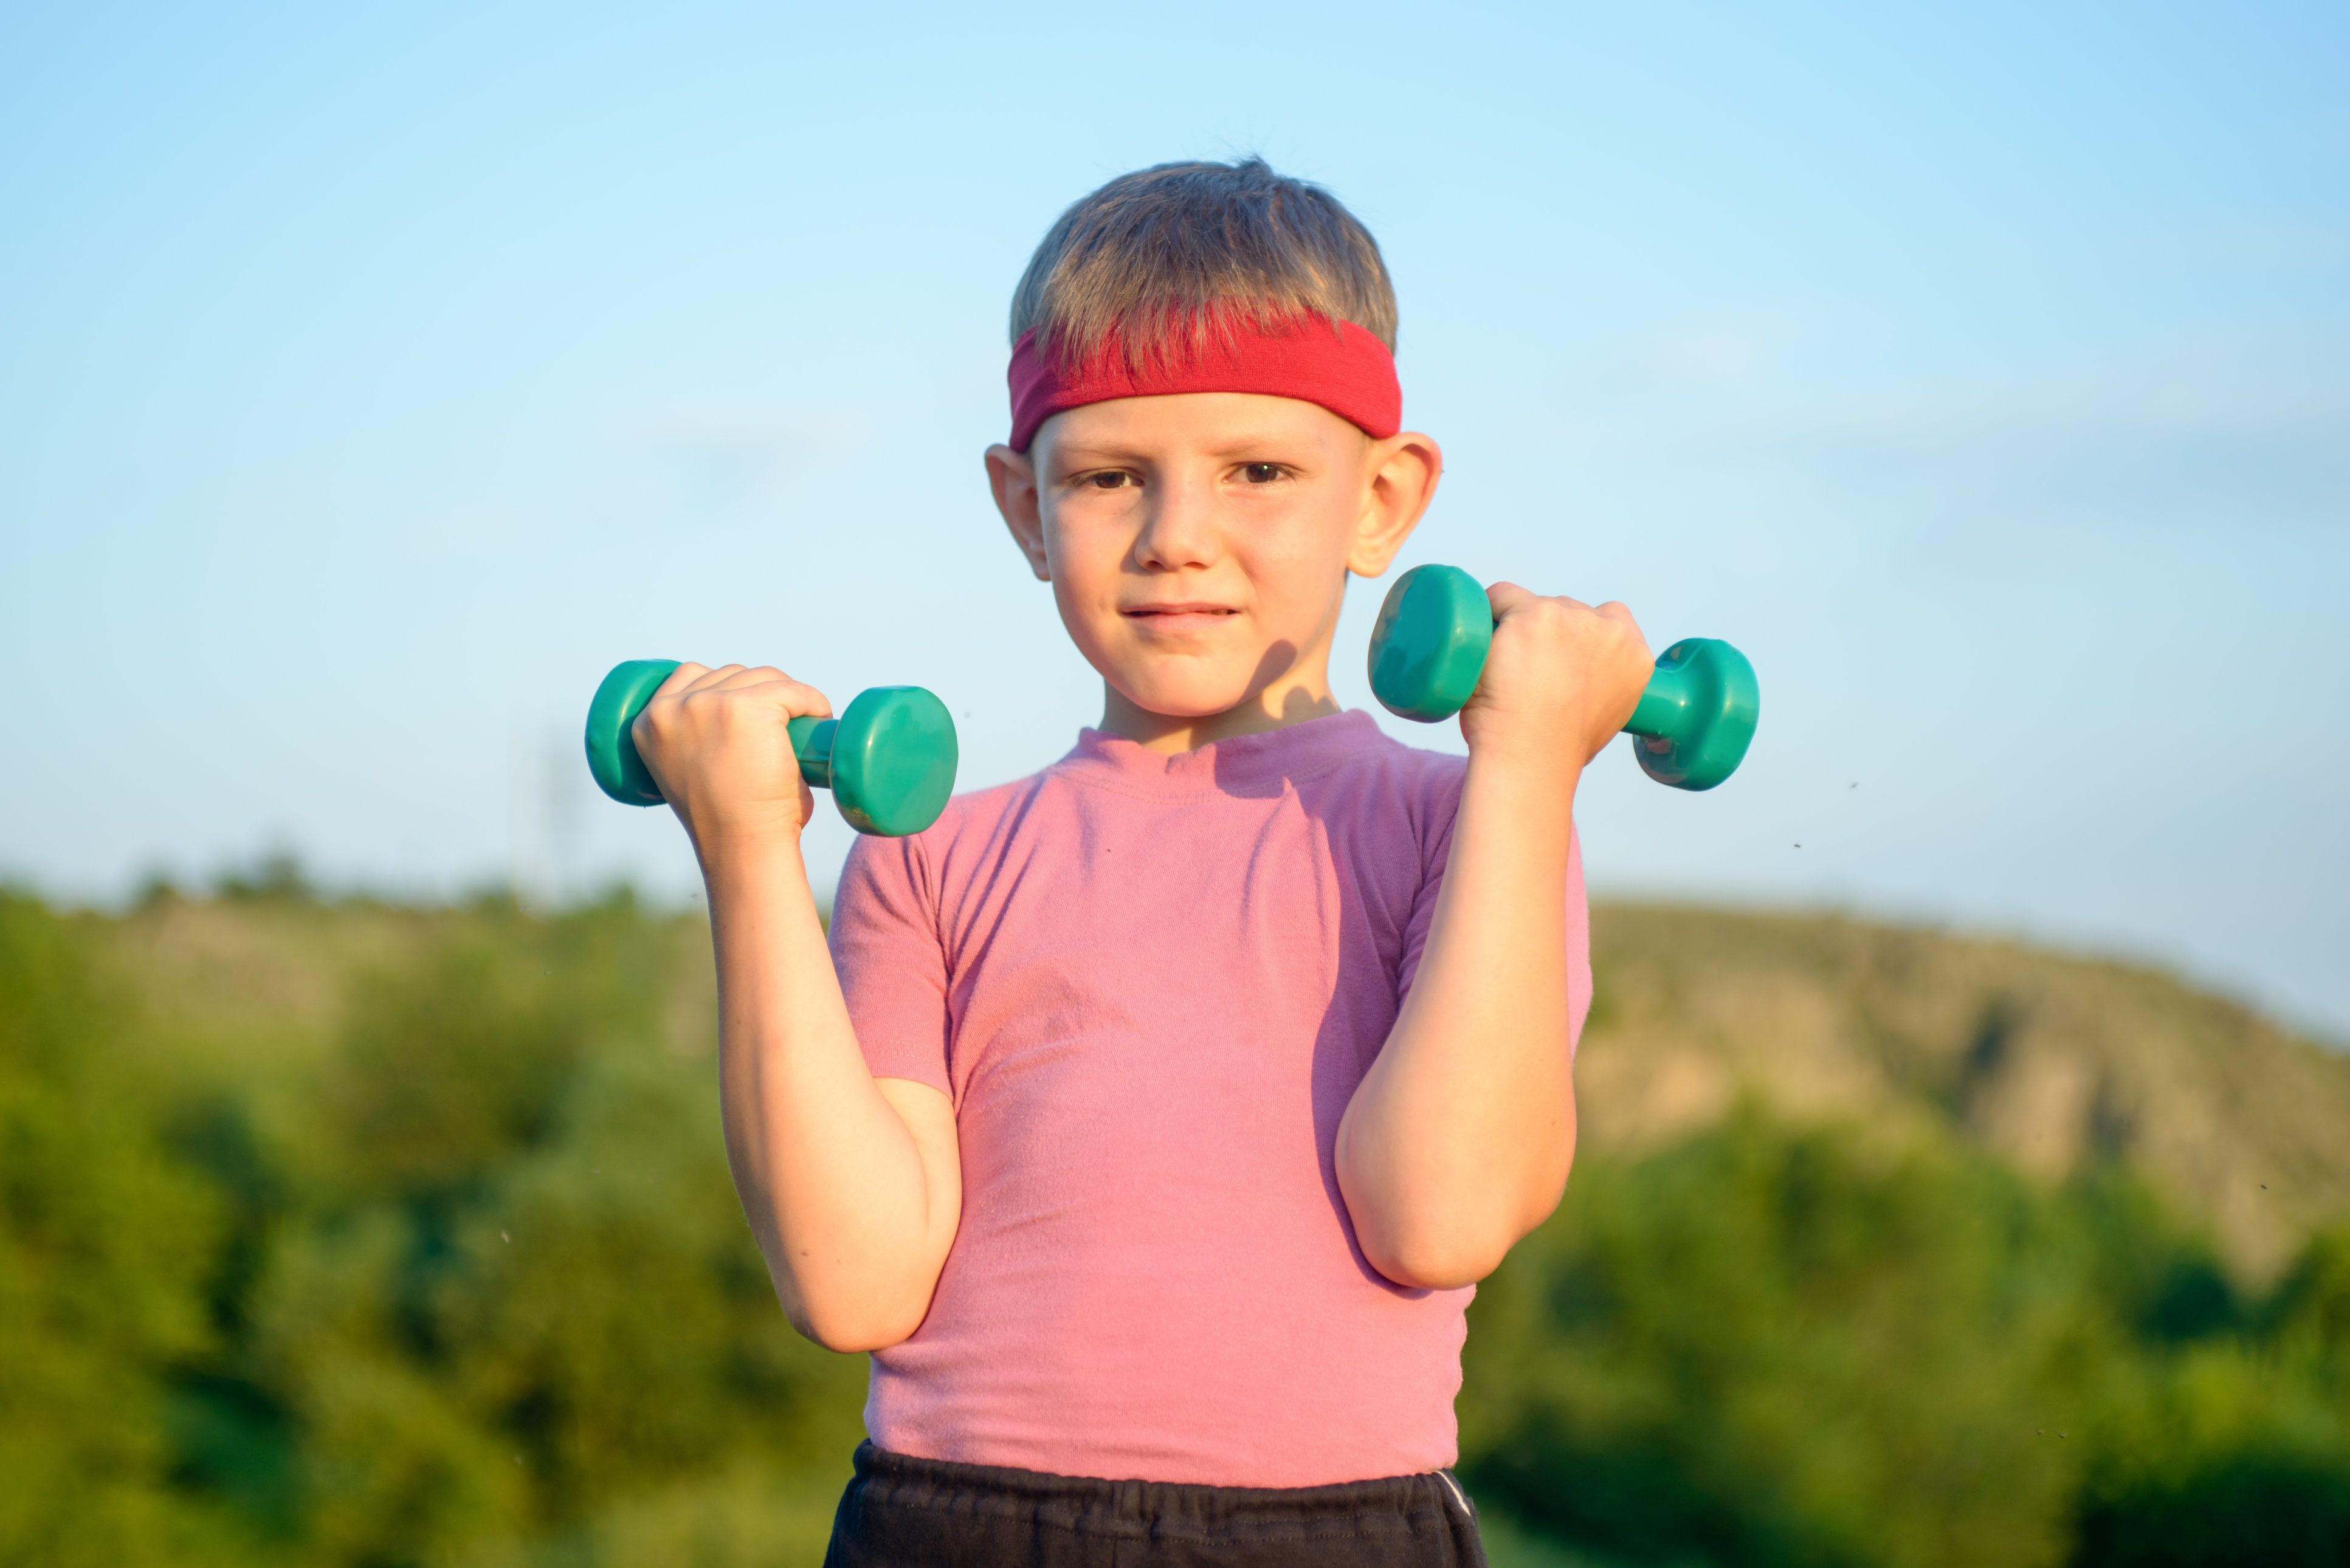 Half Body Shot of an Athletic Cute Boy with Red Warrior Headband, Lifting Two Small Dumbbells and Looking at the Camera Against Green Mountain and Sky.